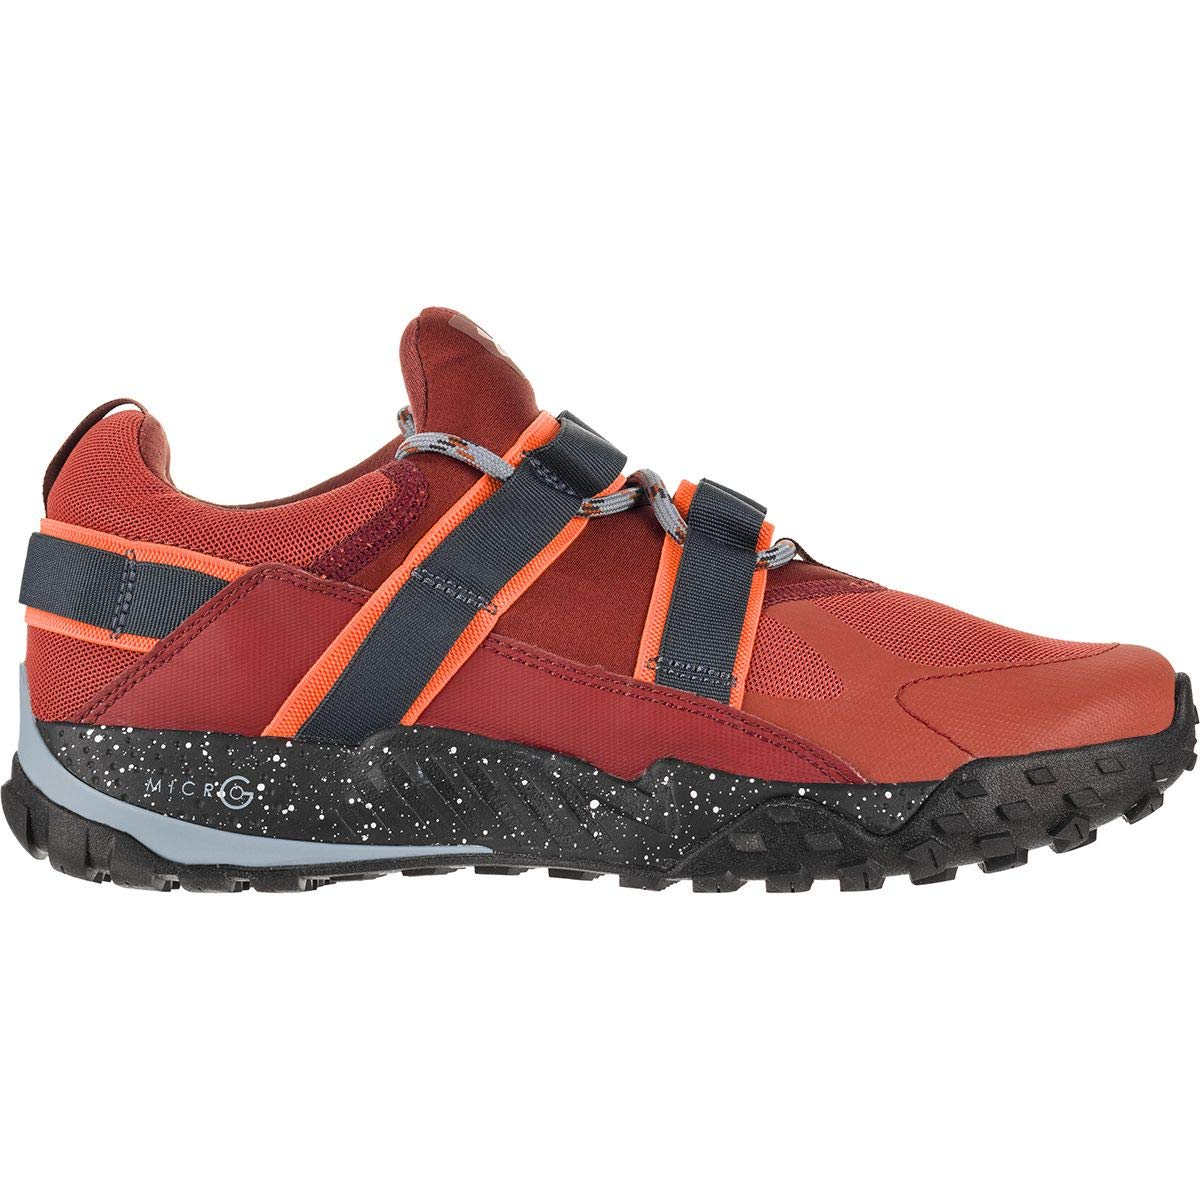 Under Armour Valsetz Trek Shoe - Men's Red Latte/Kiln Red/Red Latte, 11 by Under Armour